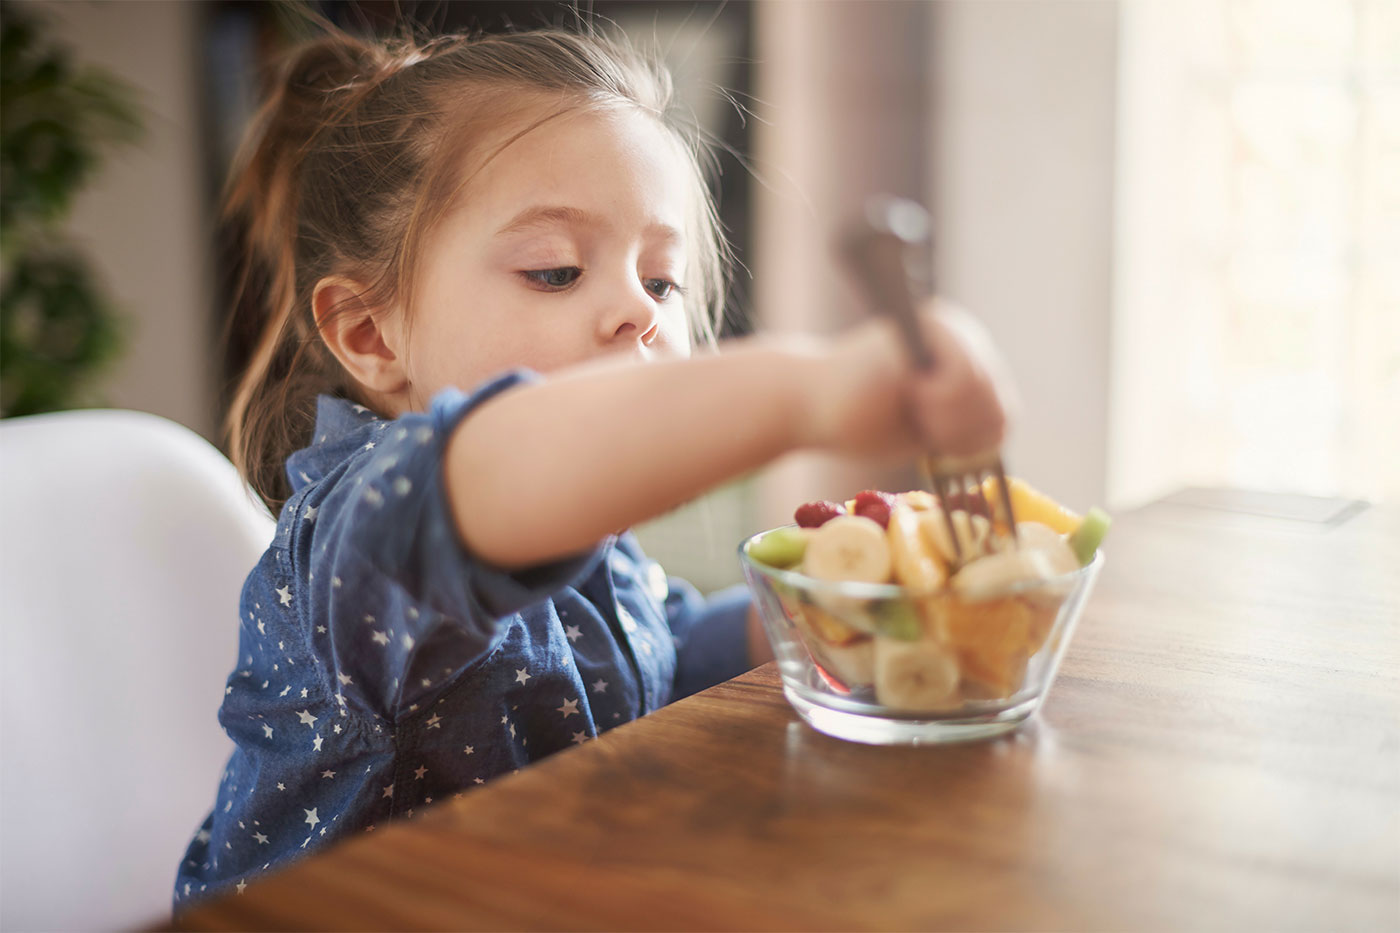 Little girl eating a snack of fruits